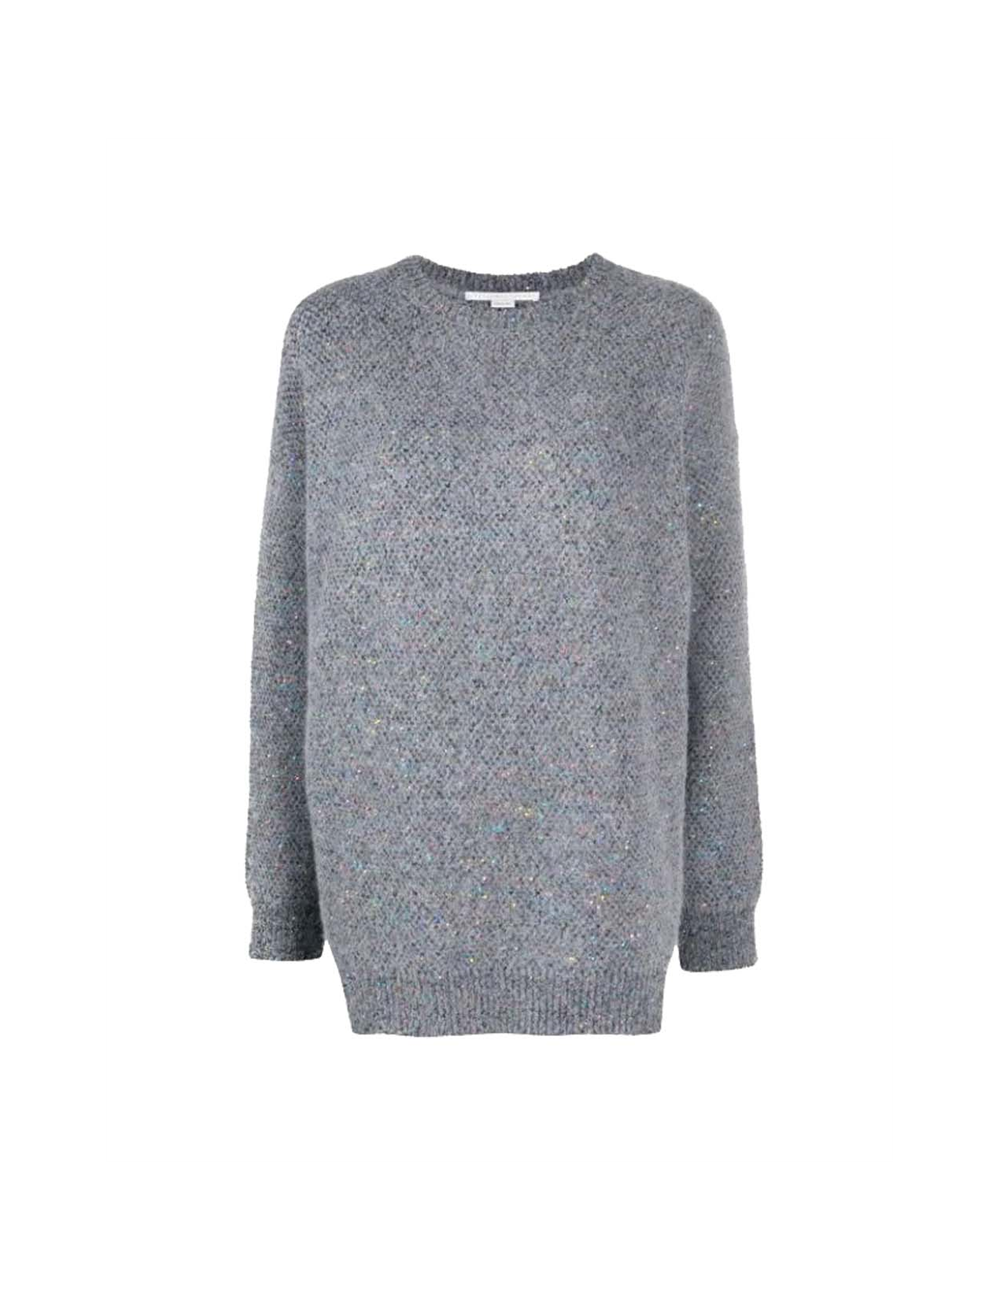 Sequined knit sweater Stella McCartney - BIG BOSS MEGEVE